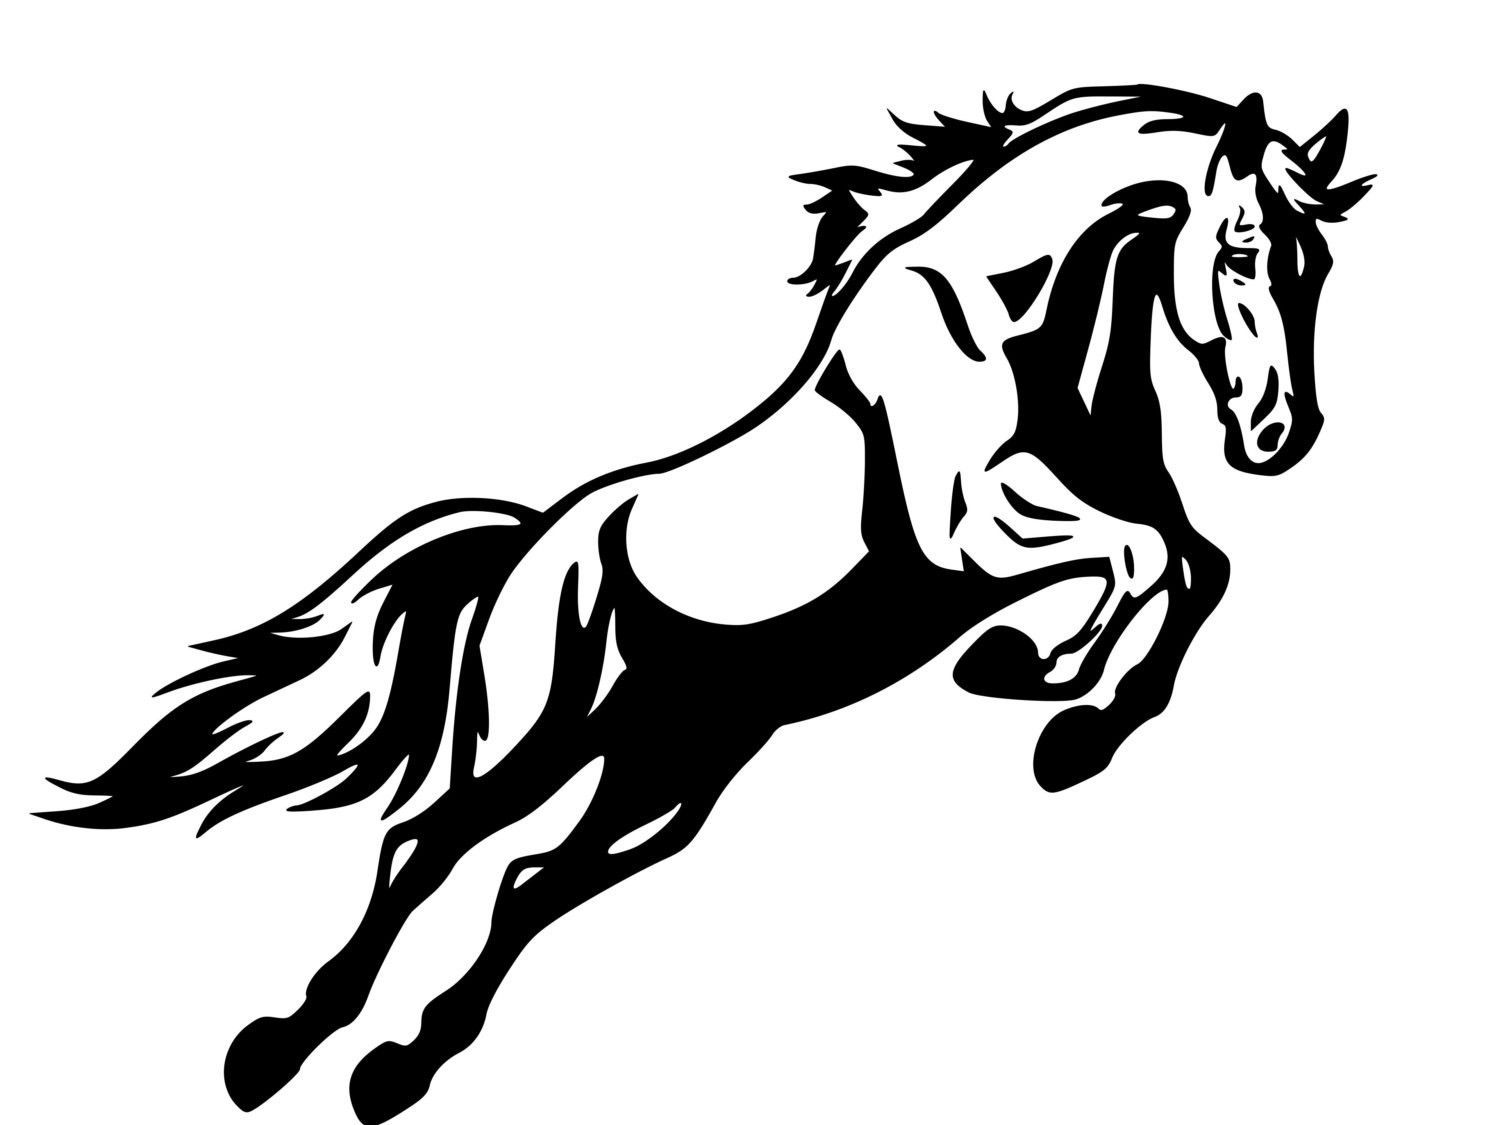 Cool Horse Jumping Coloring Pages 73 Horse Decal Horse Jumping